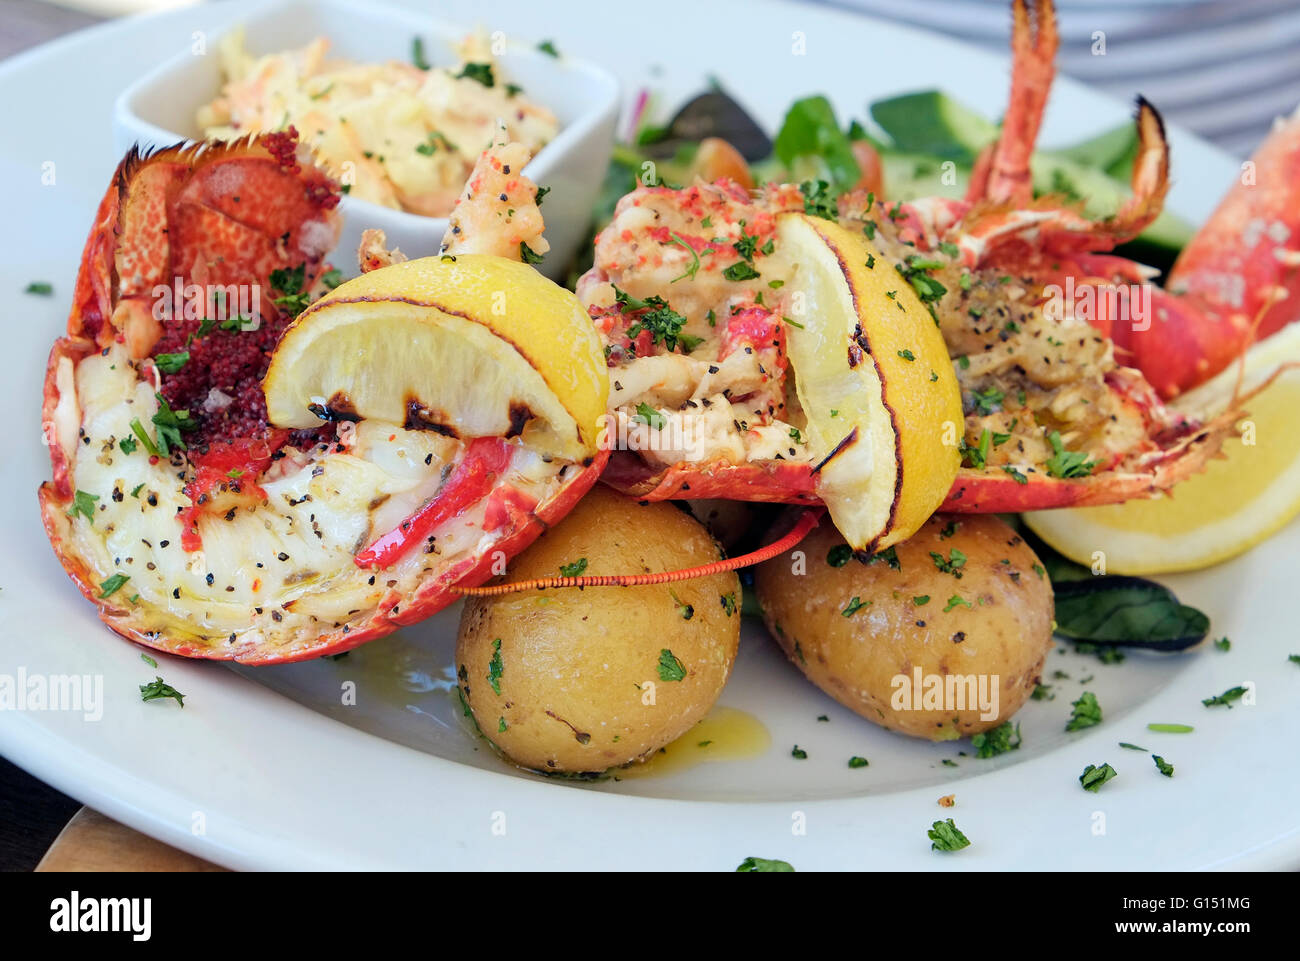 lobster lunch at the stiffkey red lion public house, north norfolk, england - Stock Image